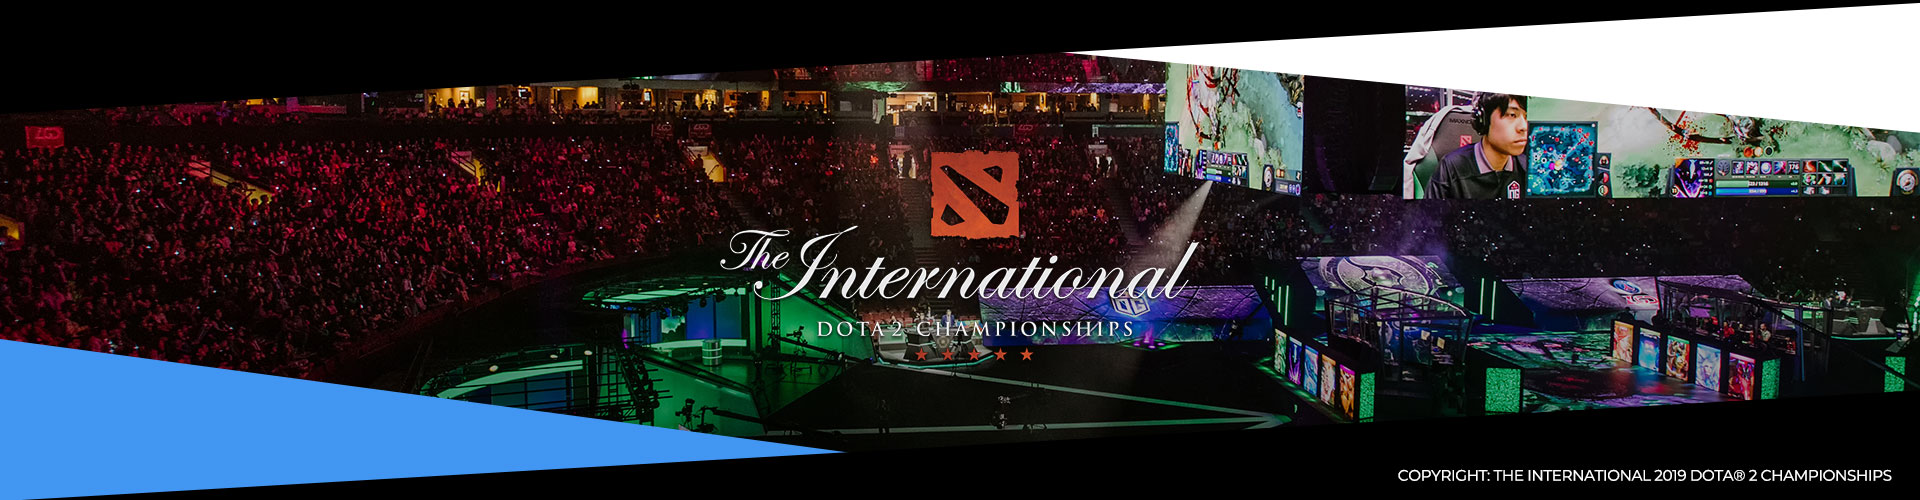 Eventsida om The International 8. Lagen, prispotten och formatet.